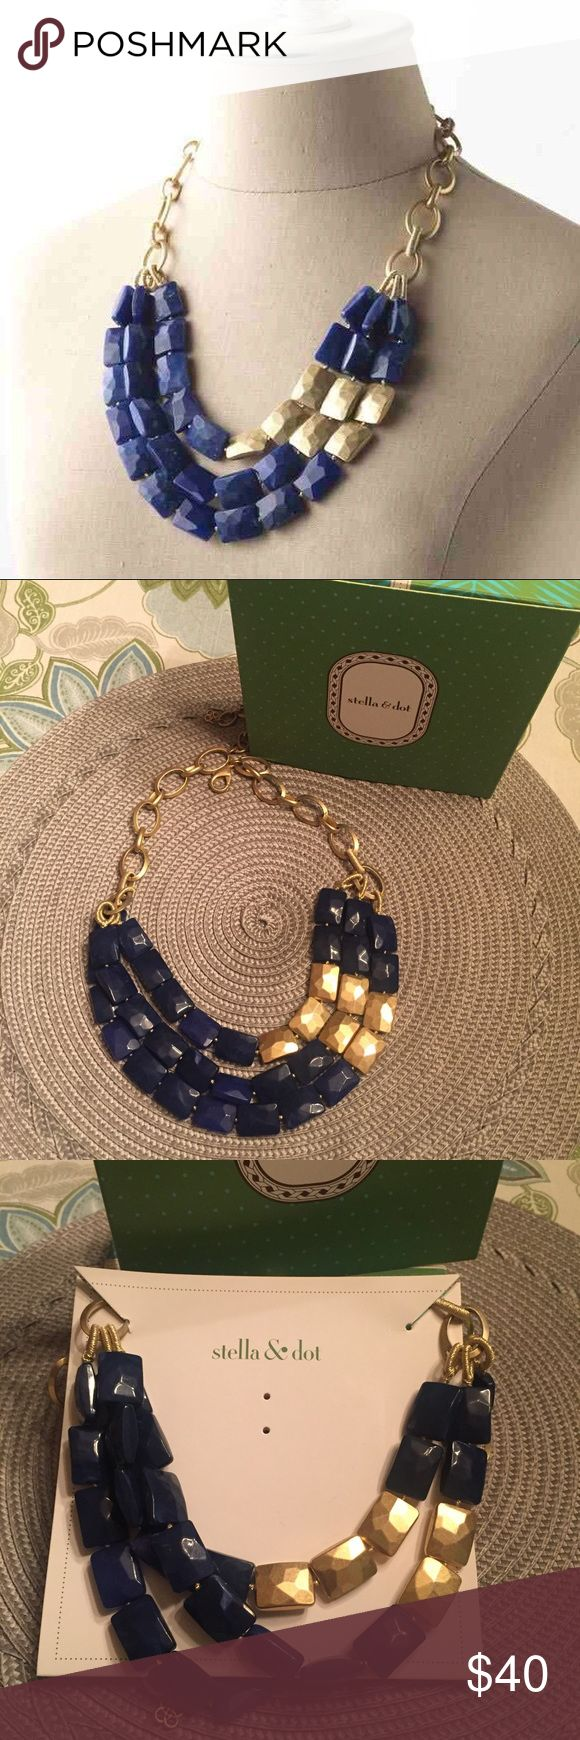 *Sale* Stella & Dot Bahari Necklace! EUC Excellent condition! Only worn a few times! Comes with the box! Beautiful navy & gold statement necklace! Stella & Dot Jewelry Necklaces